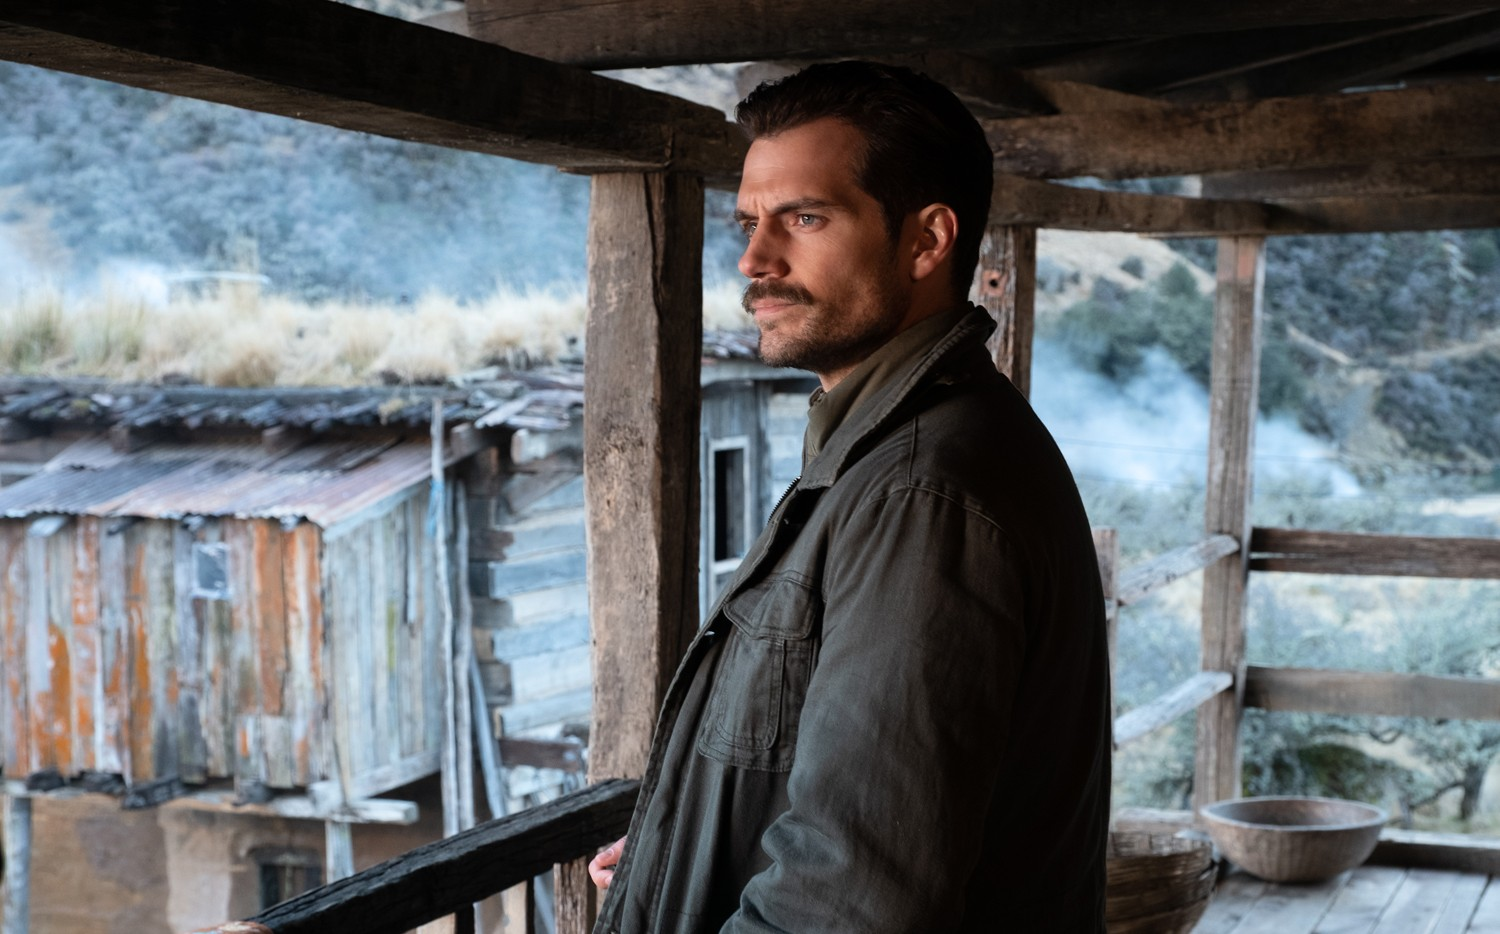 Henry Cavill as August Walker in MISSION: IMPOSSIBLE - FALLOUT (Credit: Paramount Pictures)